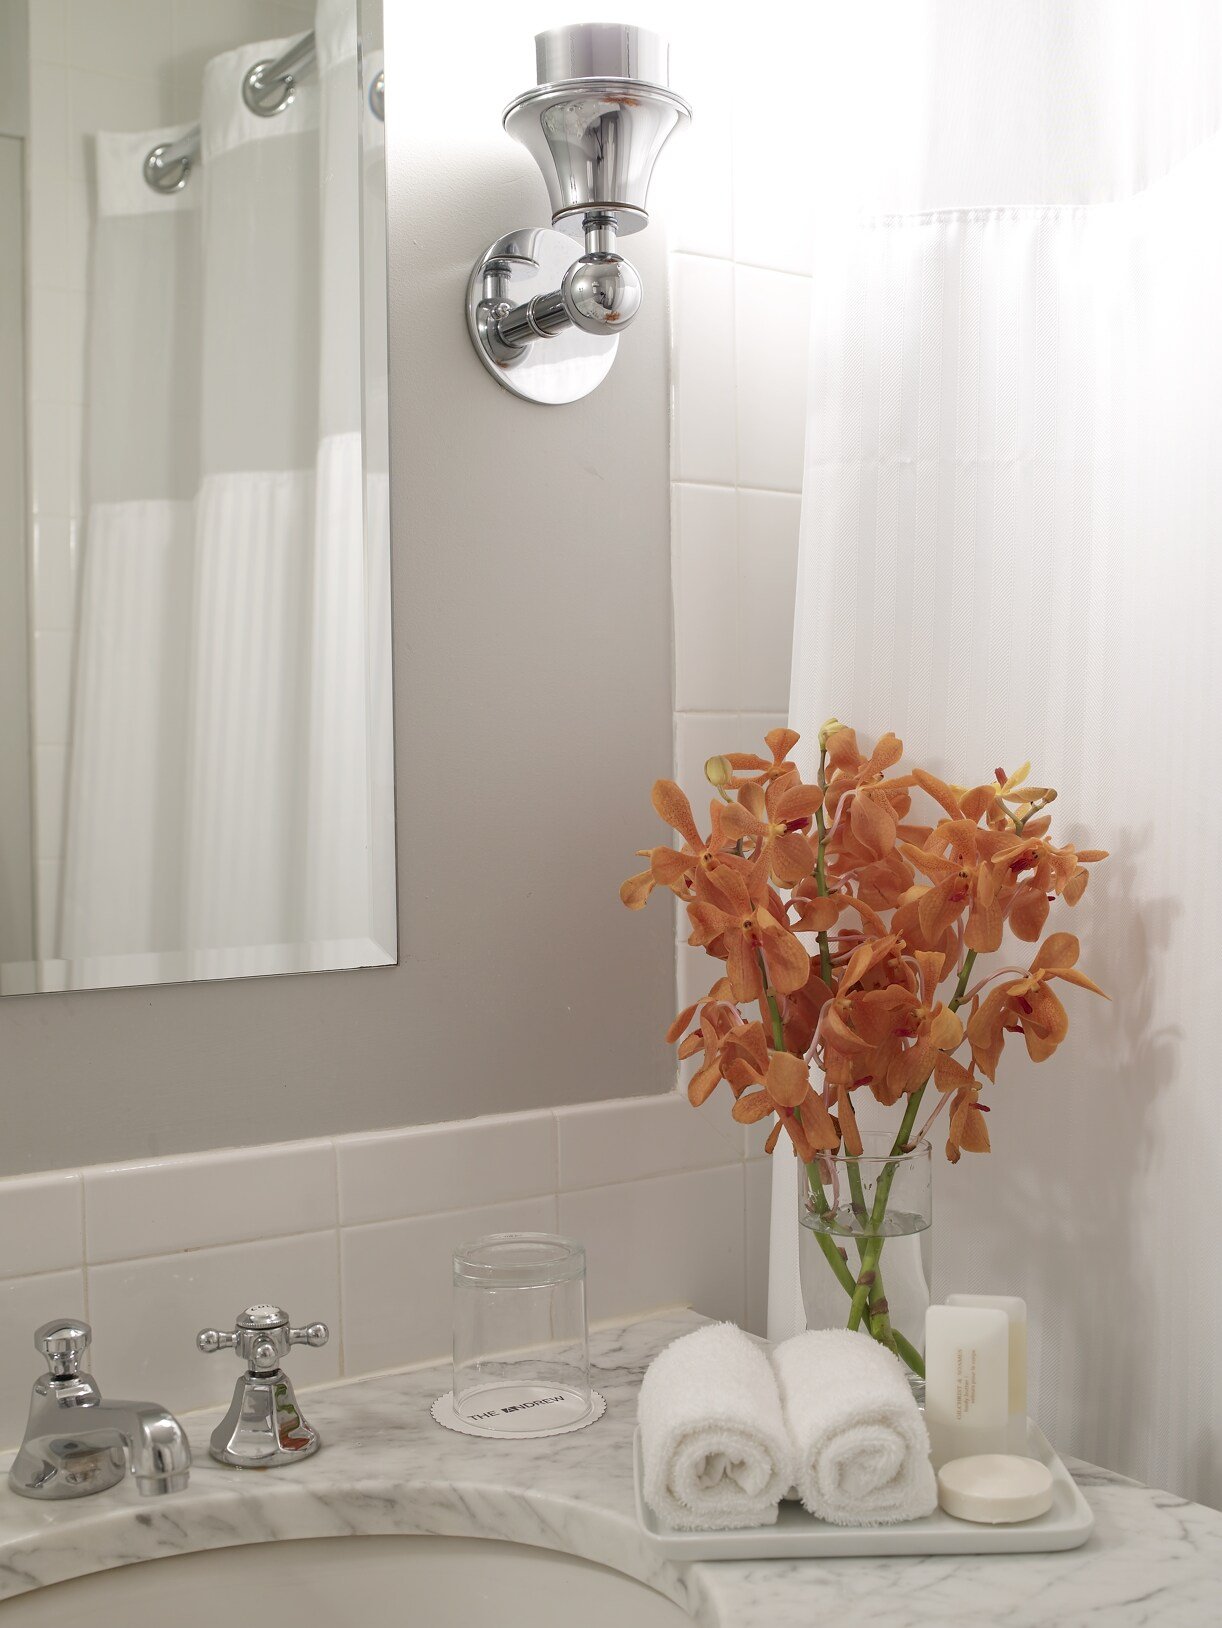 https://www.hotelsbyday.com/_data/default-hotel_image/0/3002/andrews-bathroom-010.jpg